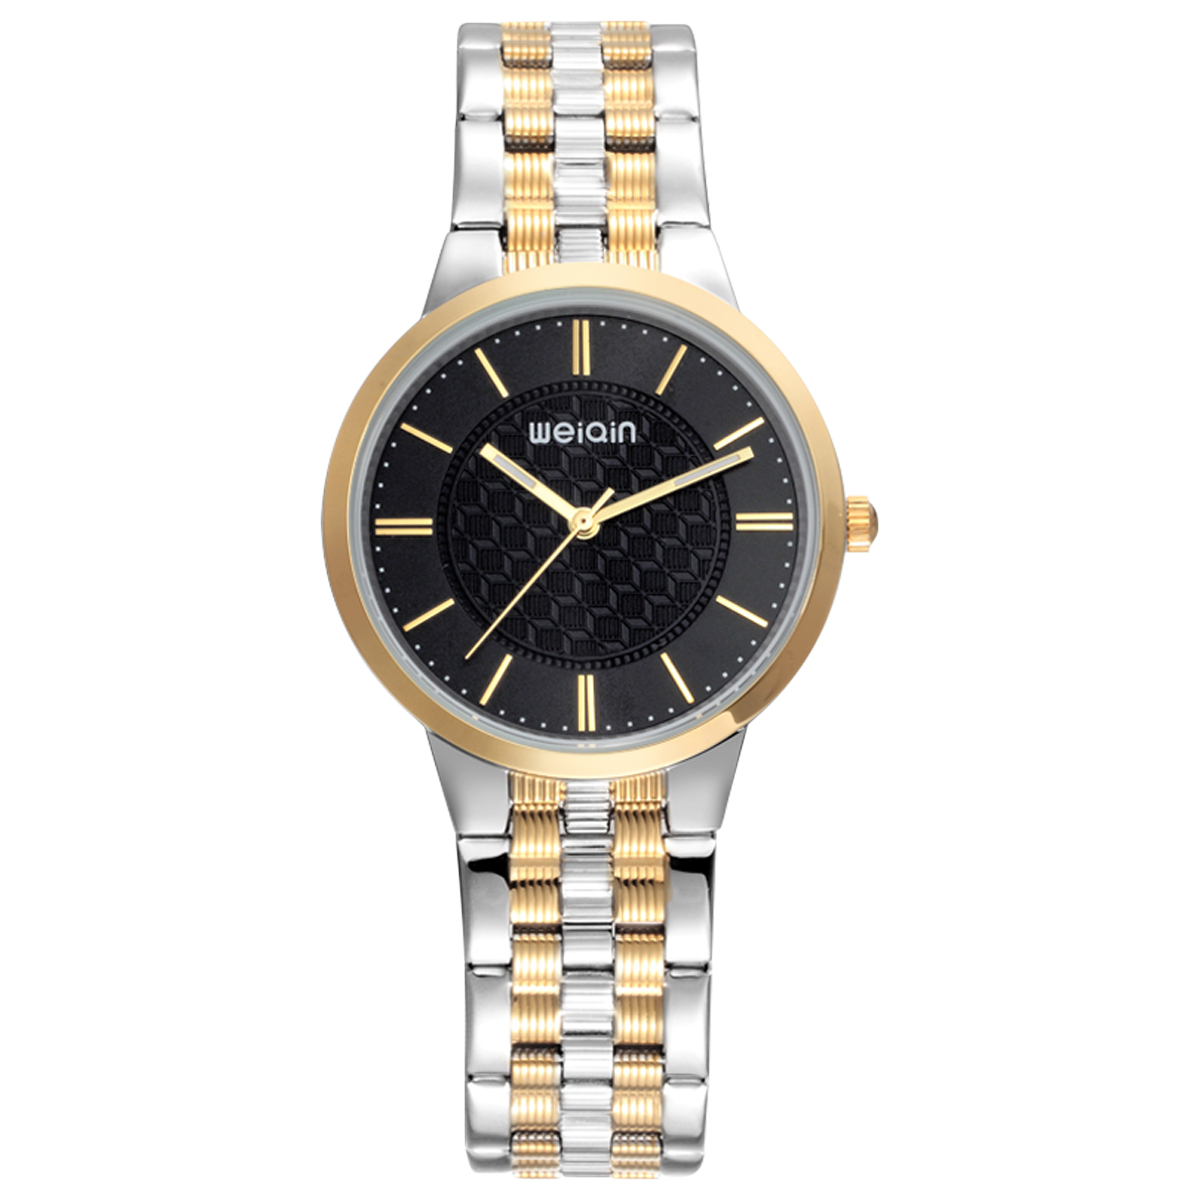 ФОТО WEIQIN Mens Watches Nail Scale Luminous Stainless Steel Band Quartz Watch For Men Hardlex Window Business Male Clock